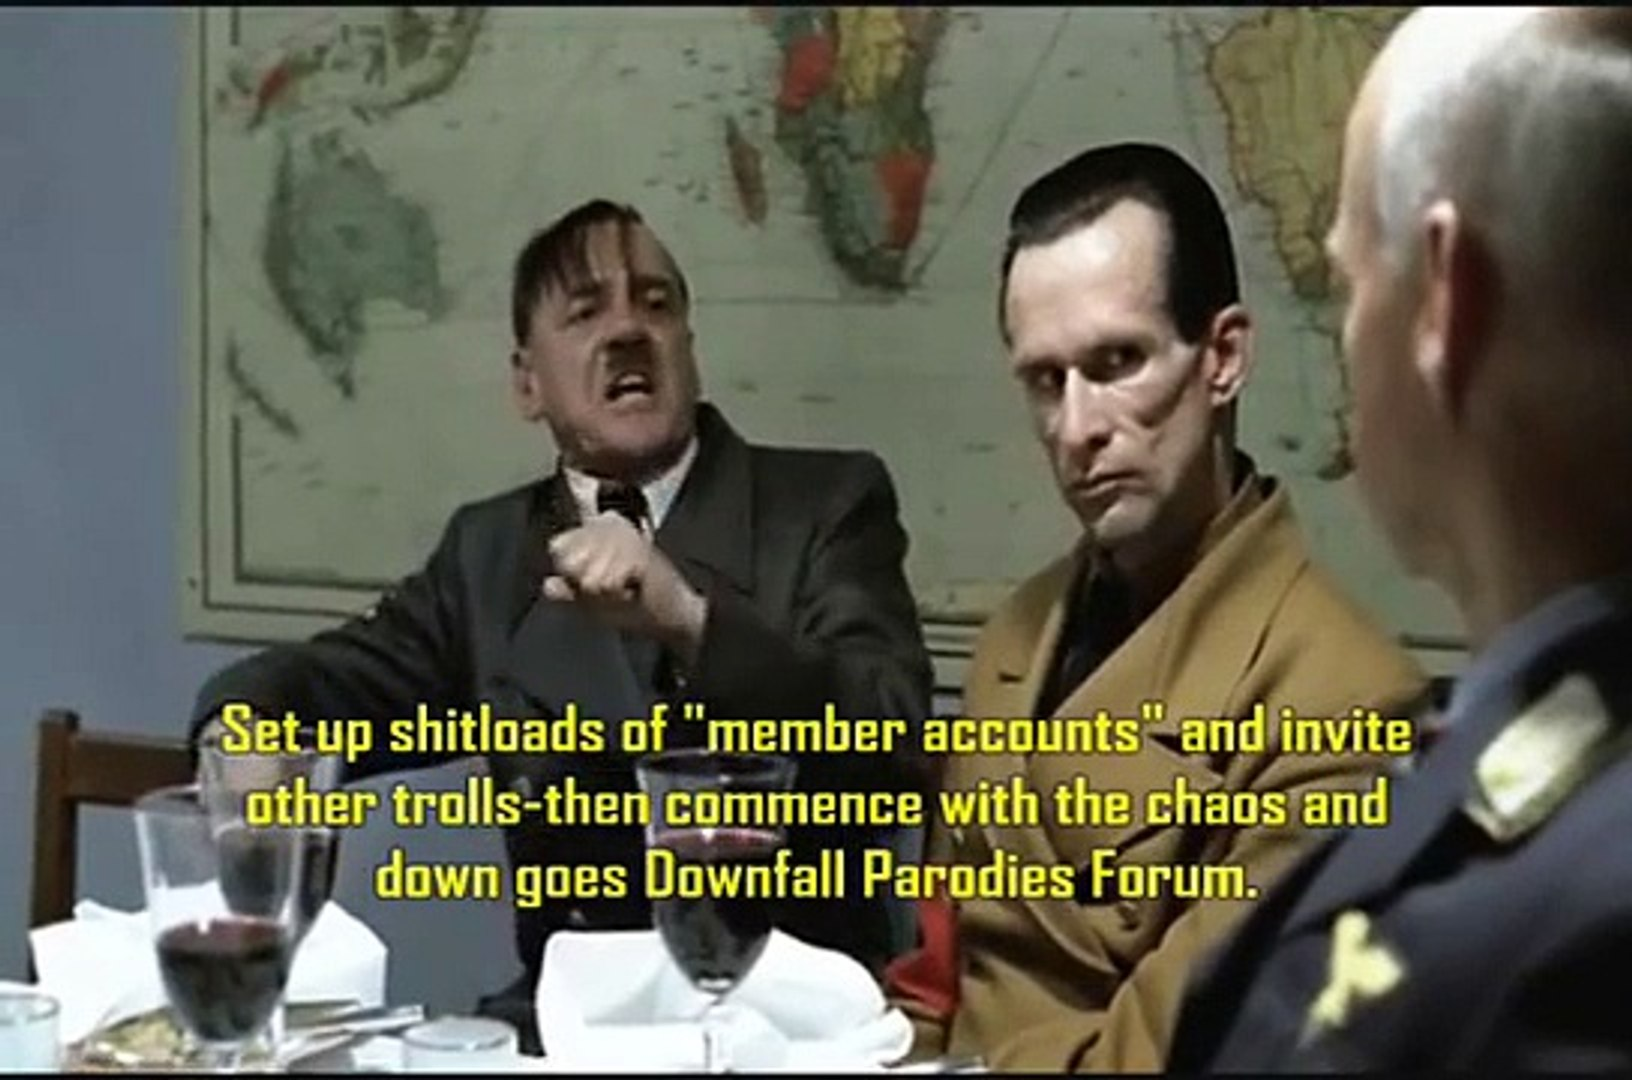 How To With Hitler: Troll Downfall Parodies